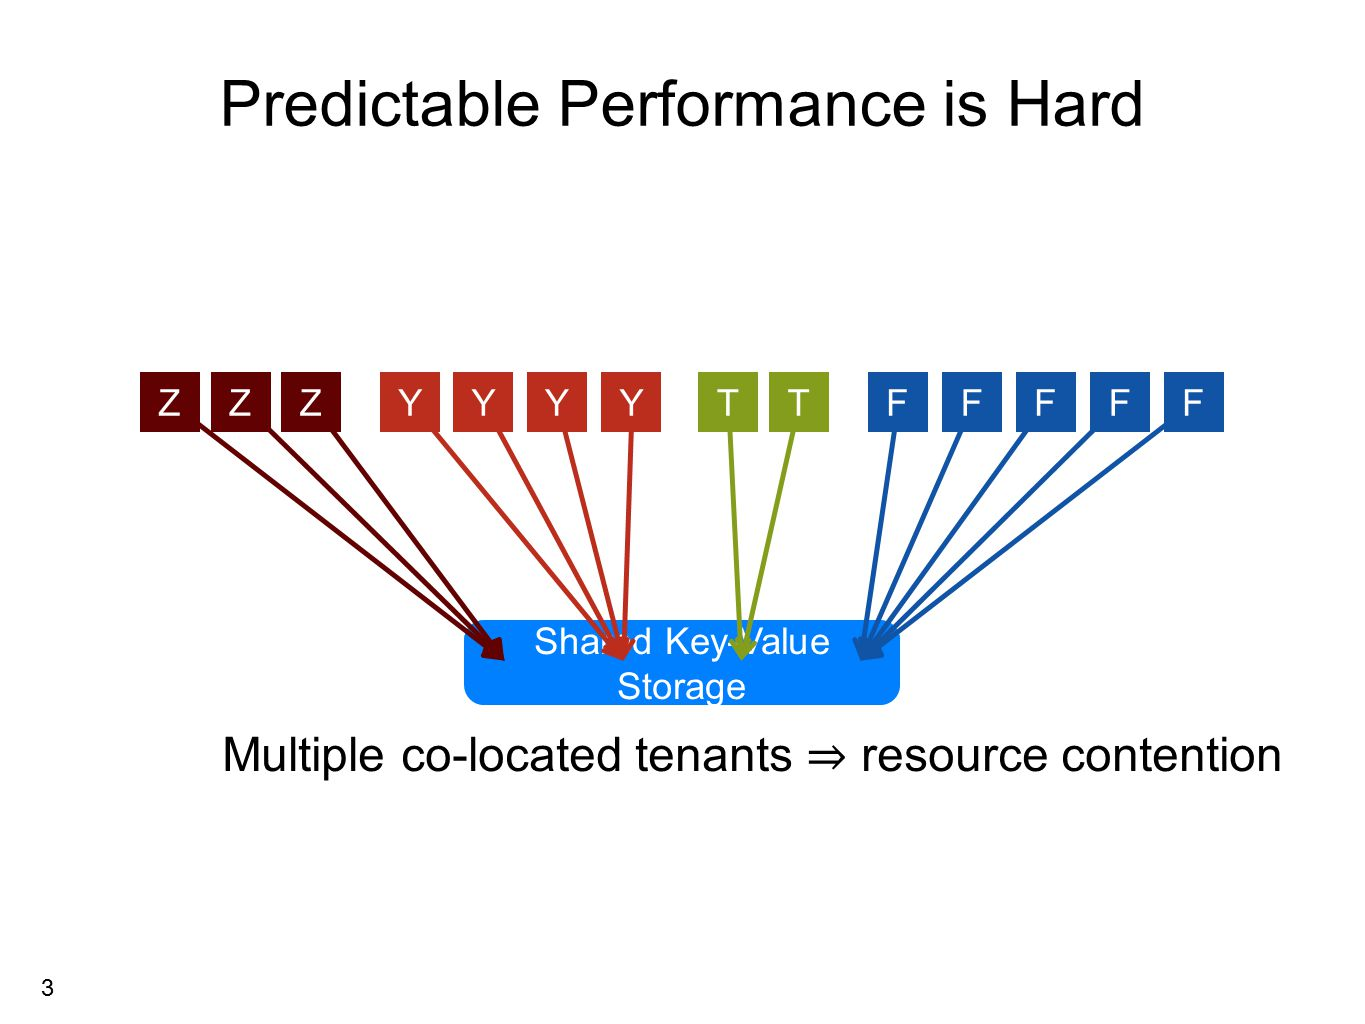 3 DD Shared Key-Value Storage ZYTFZYFTYYZFFF Multiple co-located tenants ⇒ resource contention Predictable Performance is Hard